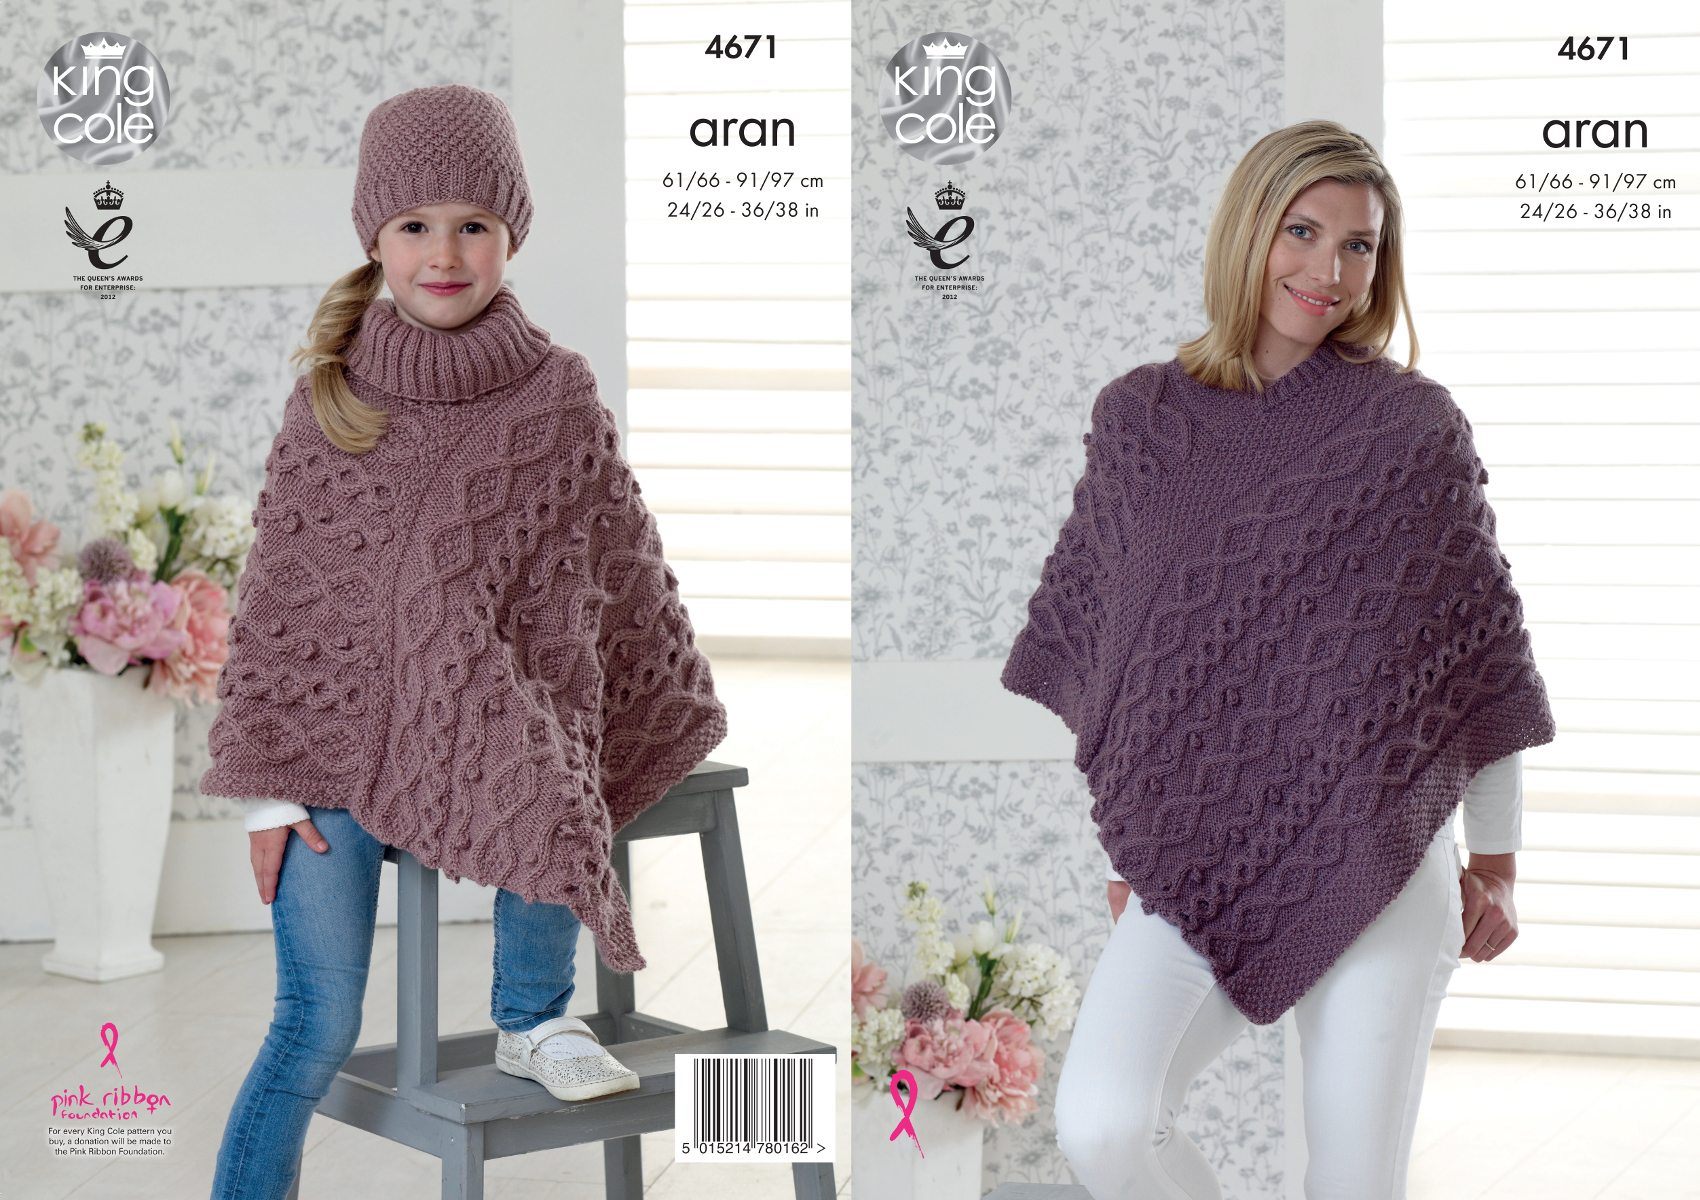 Knitting Pattern For Childs Poncho Details About King Cole Ladies Girls Aran Knitting Pattern V Or Polo Neck Poncho Hat 4671